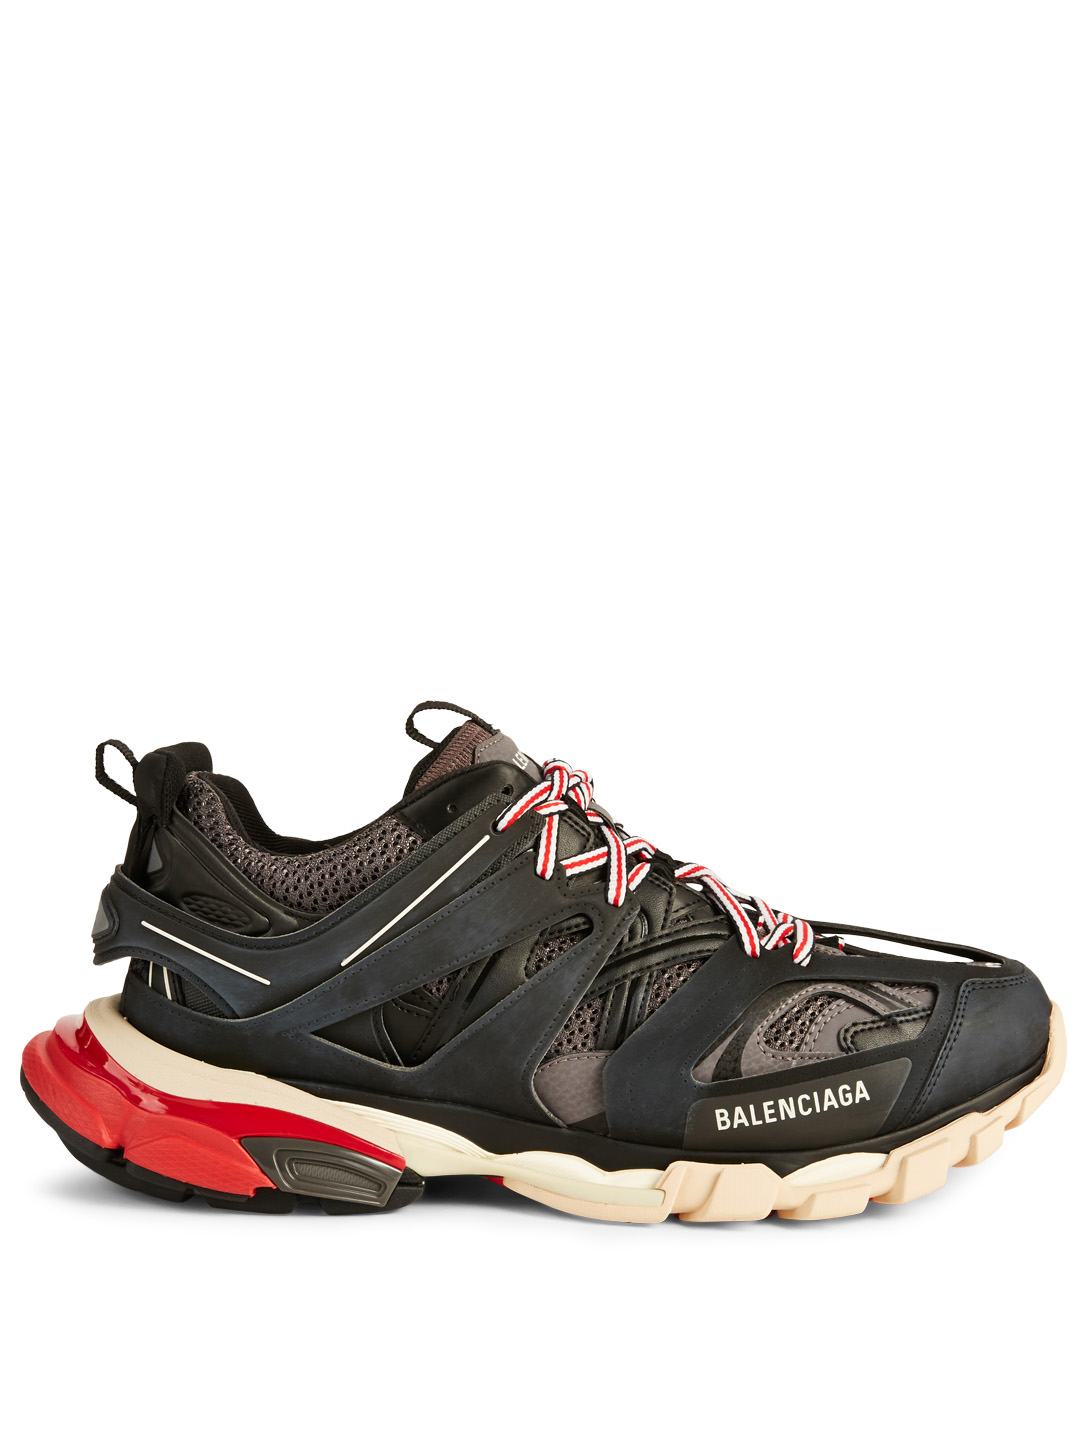 BALENCIAGA Track Nylon And Mesh Sneakers Men's Black